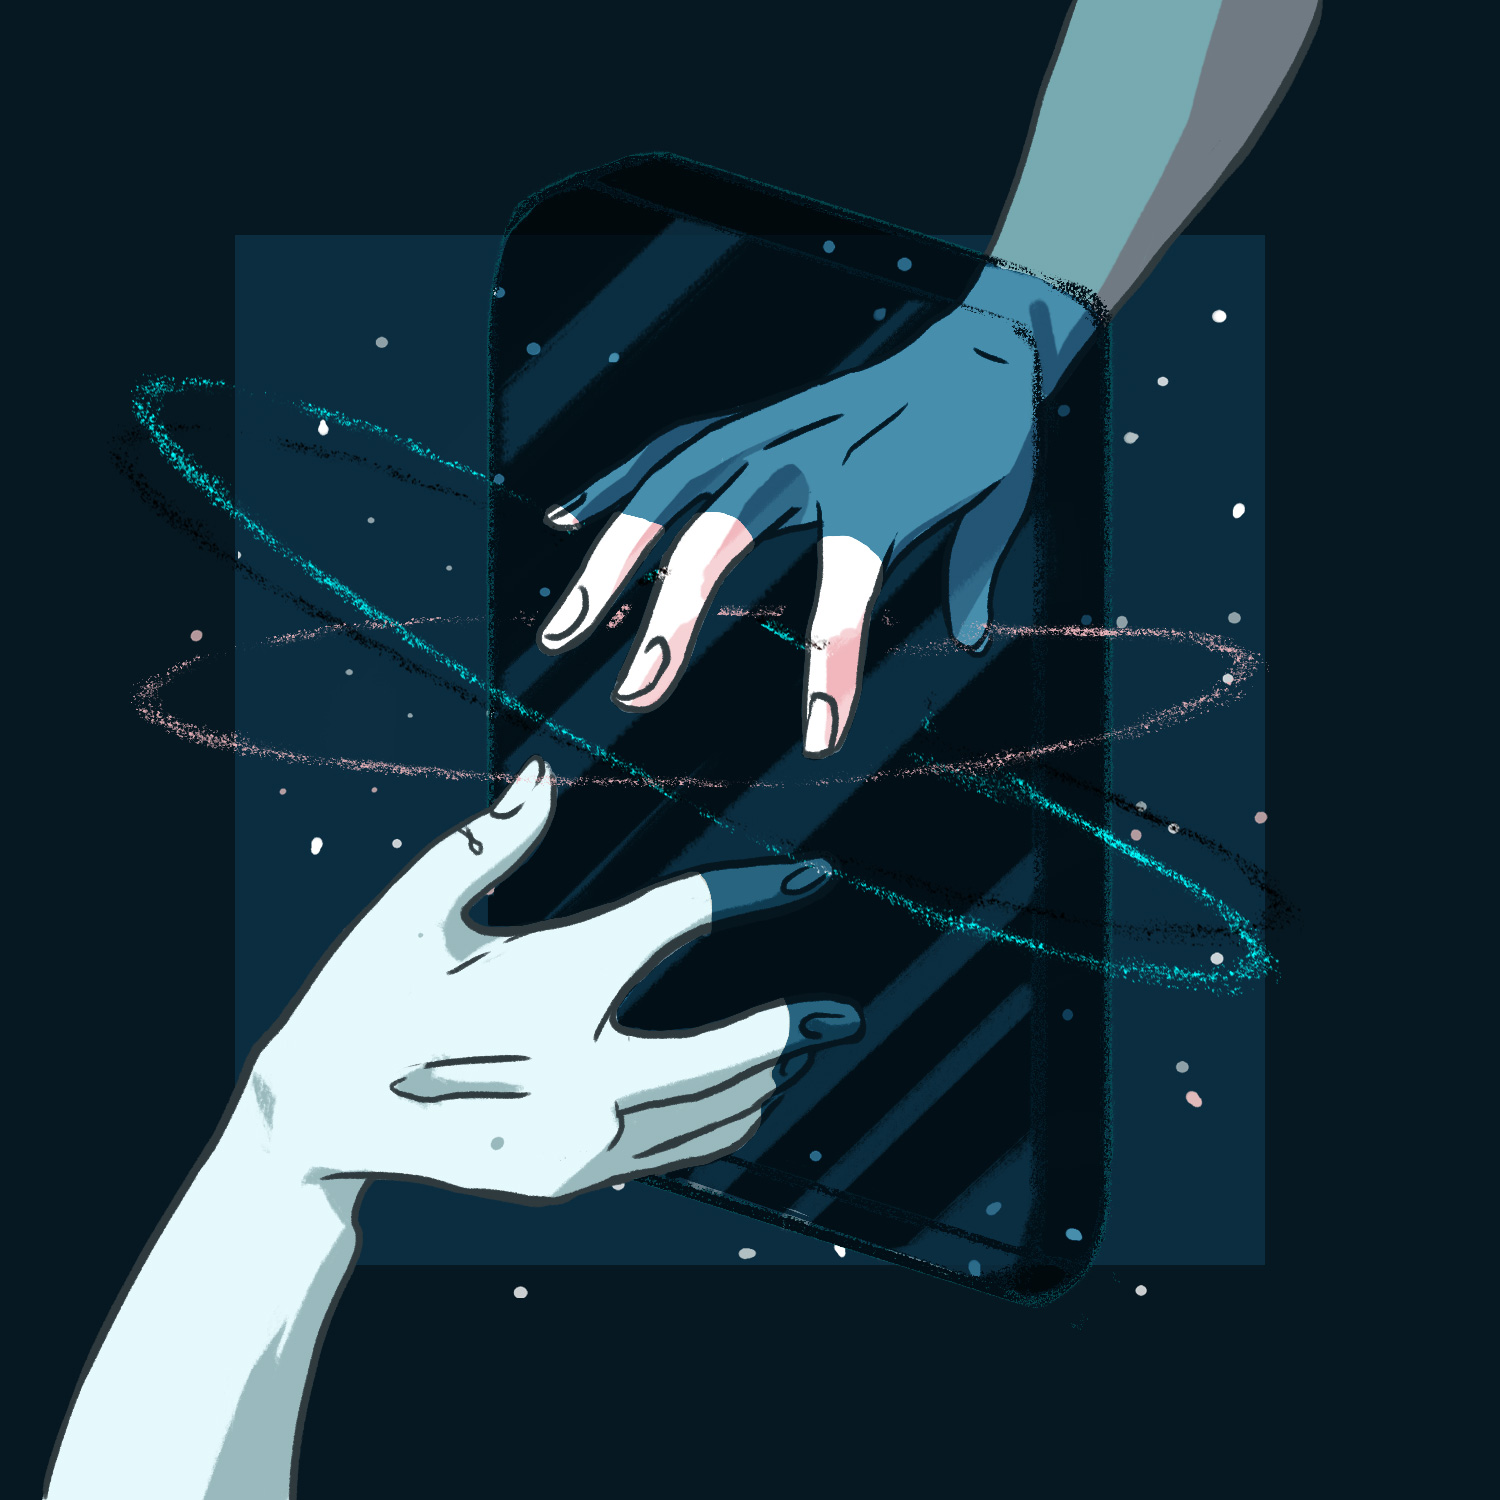 Digitally rendered illustration of two hands reaching through a mirror screen, cosmic elements and rings surrounding.